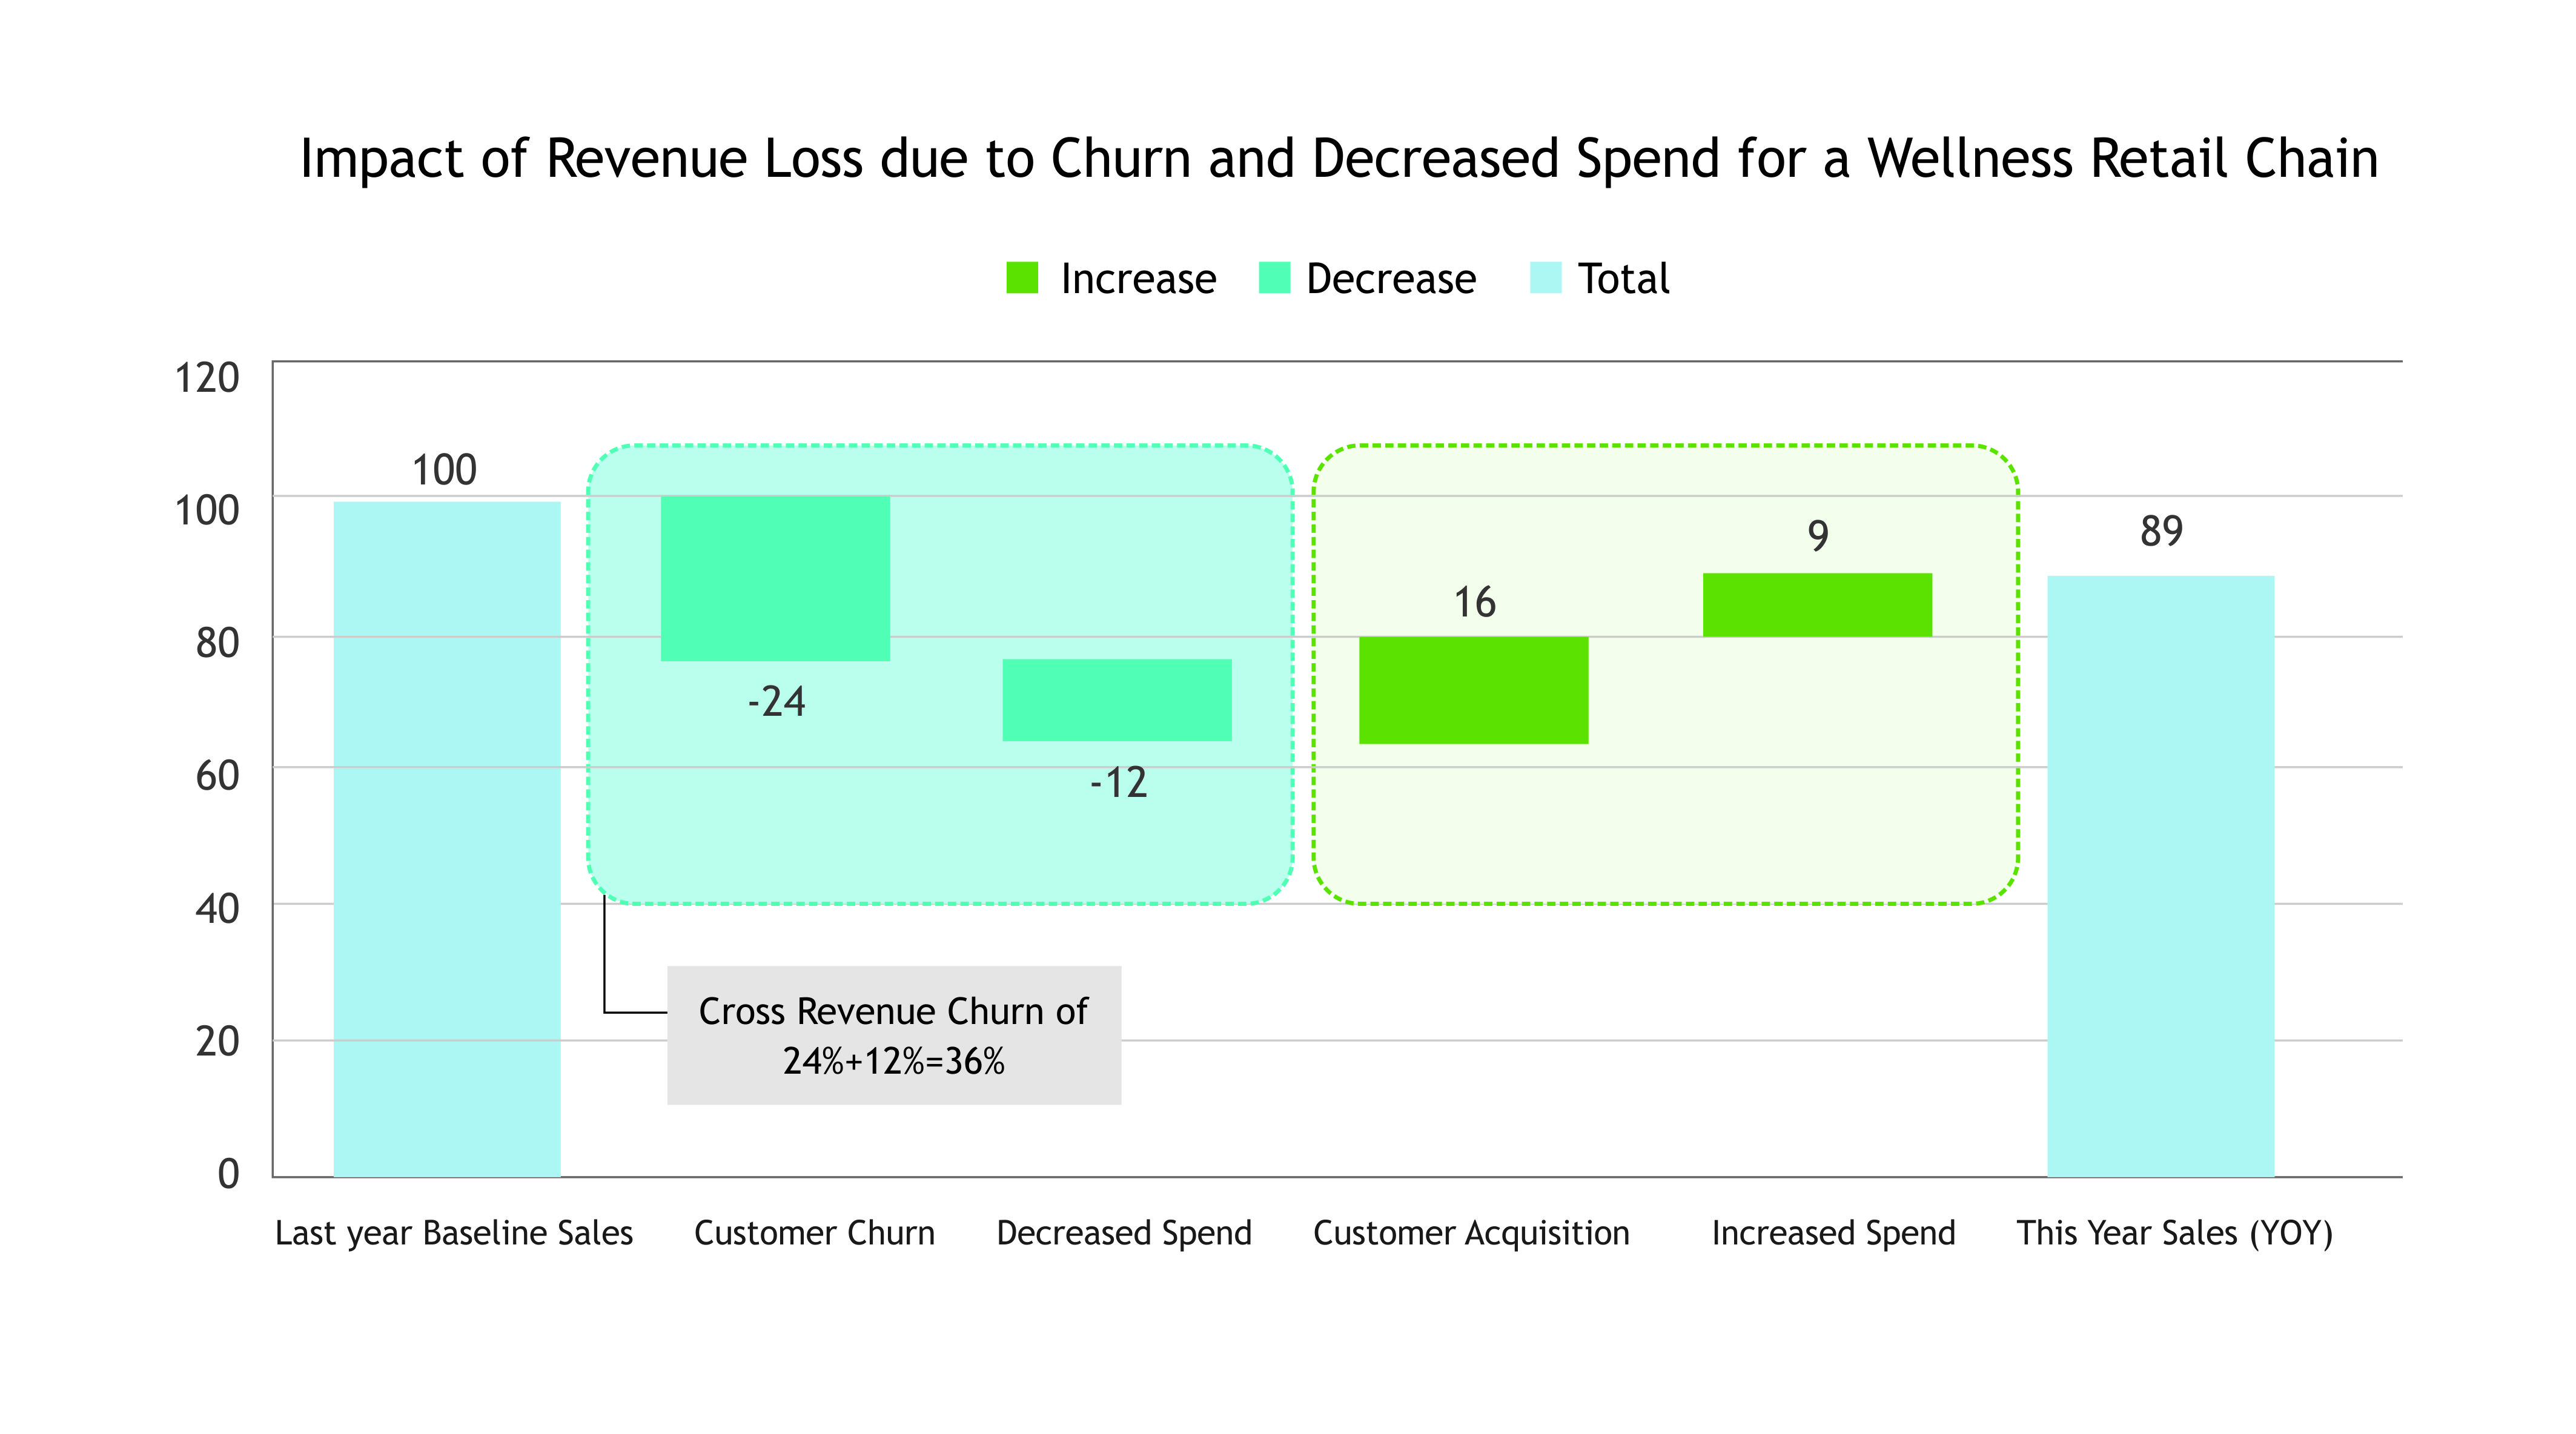 Impacts due to churn for a fellness retail chain